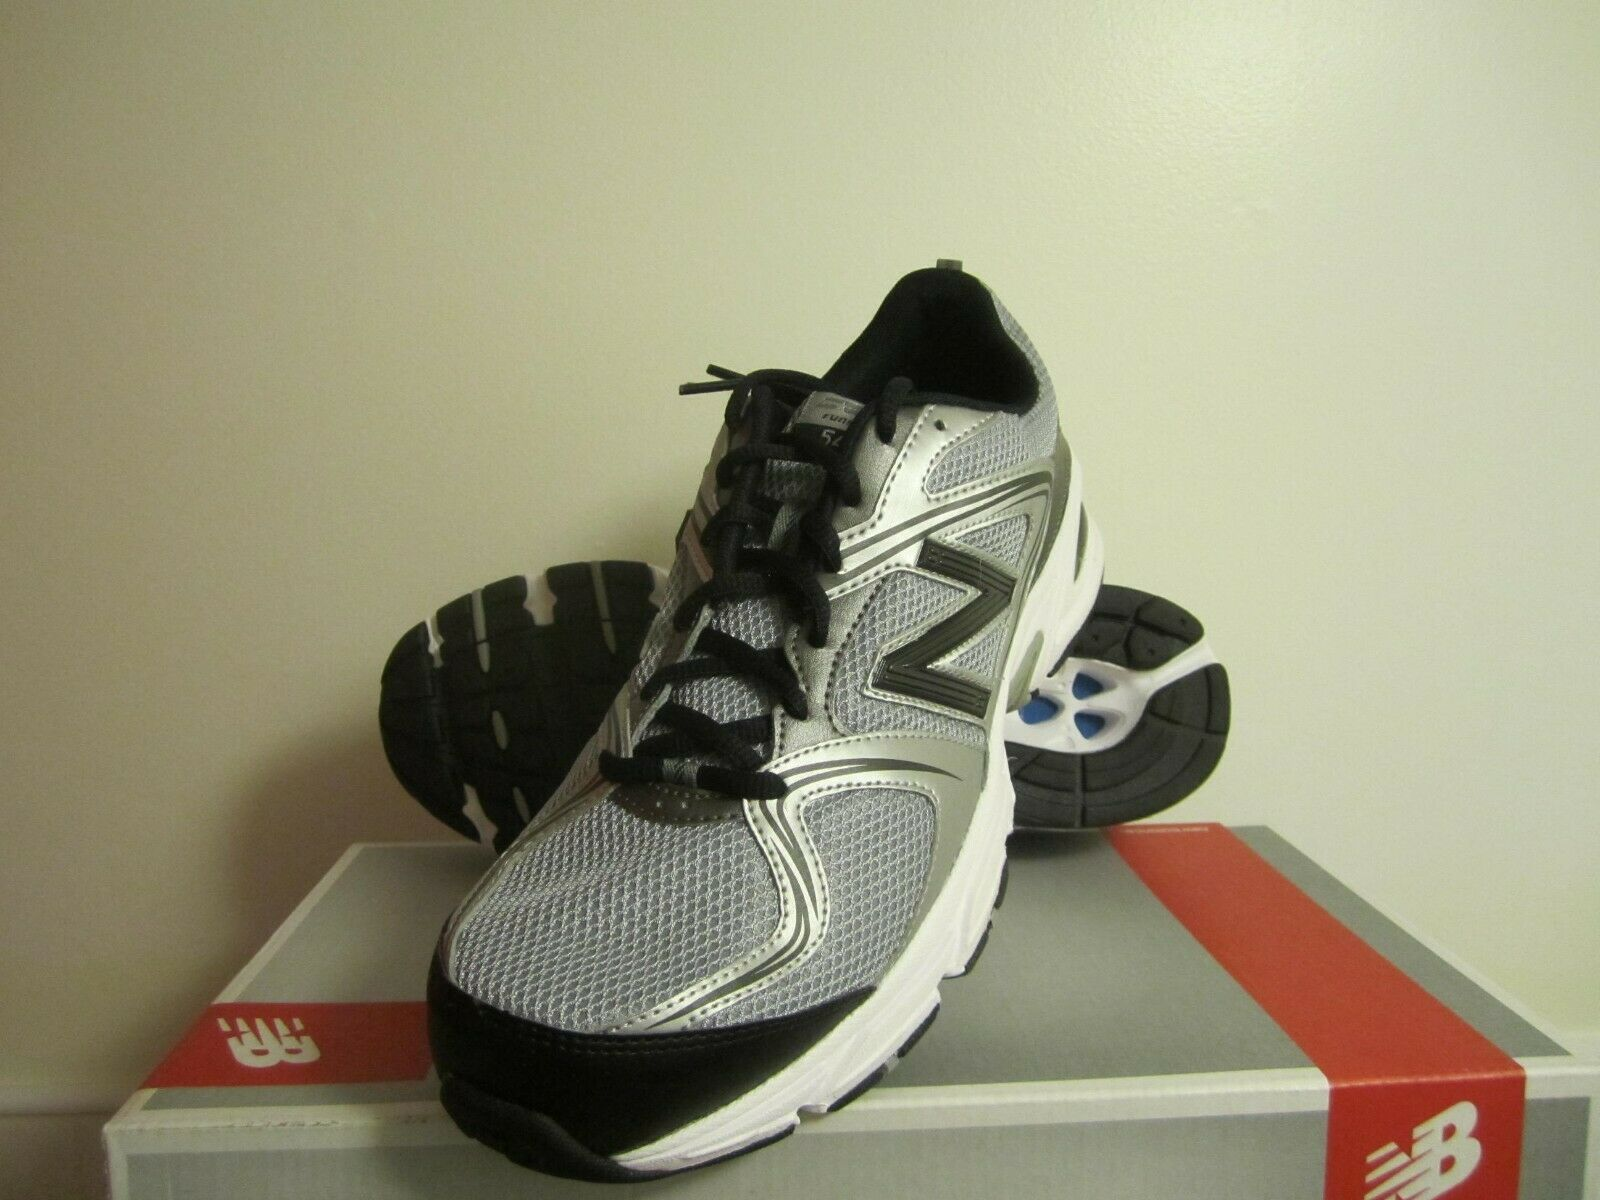 New  Mens New Balance 540 Running Sneakers shoes - 11 Wide